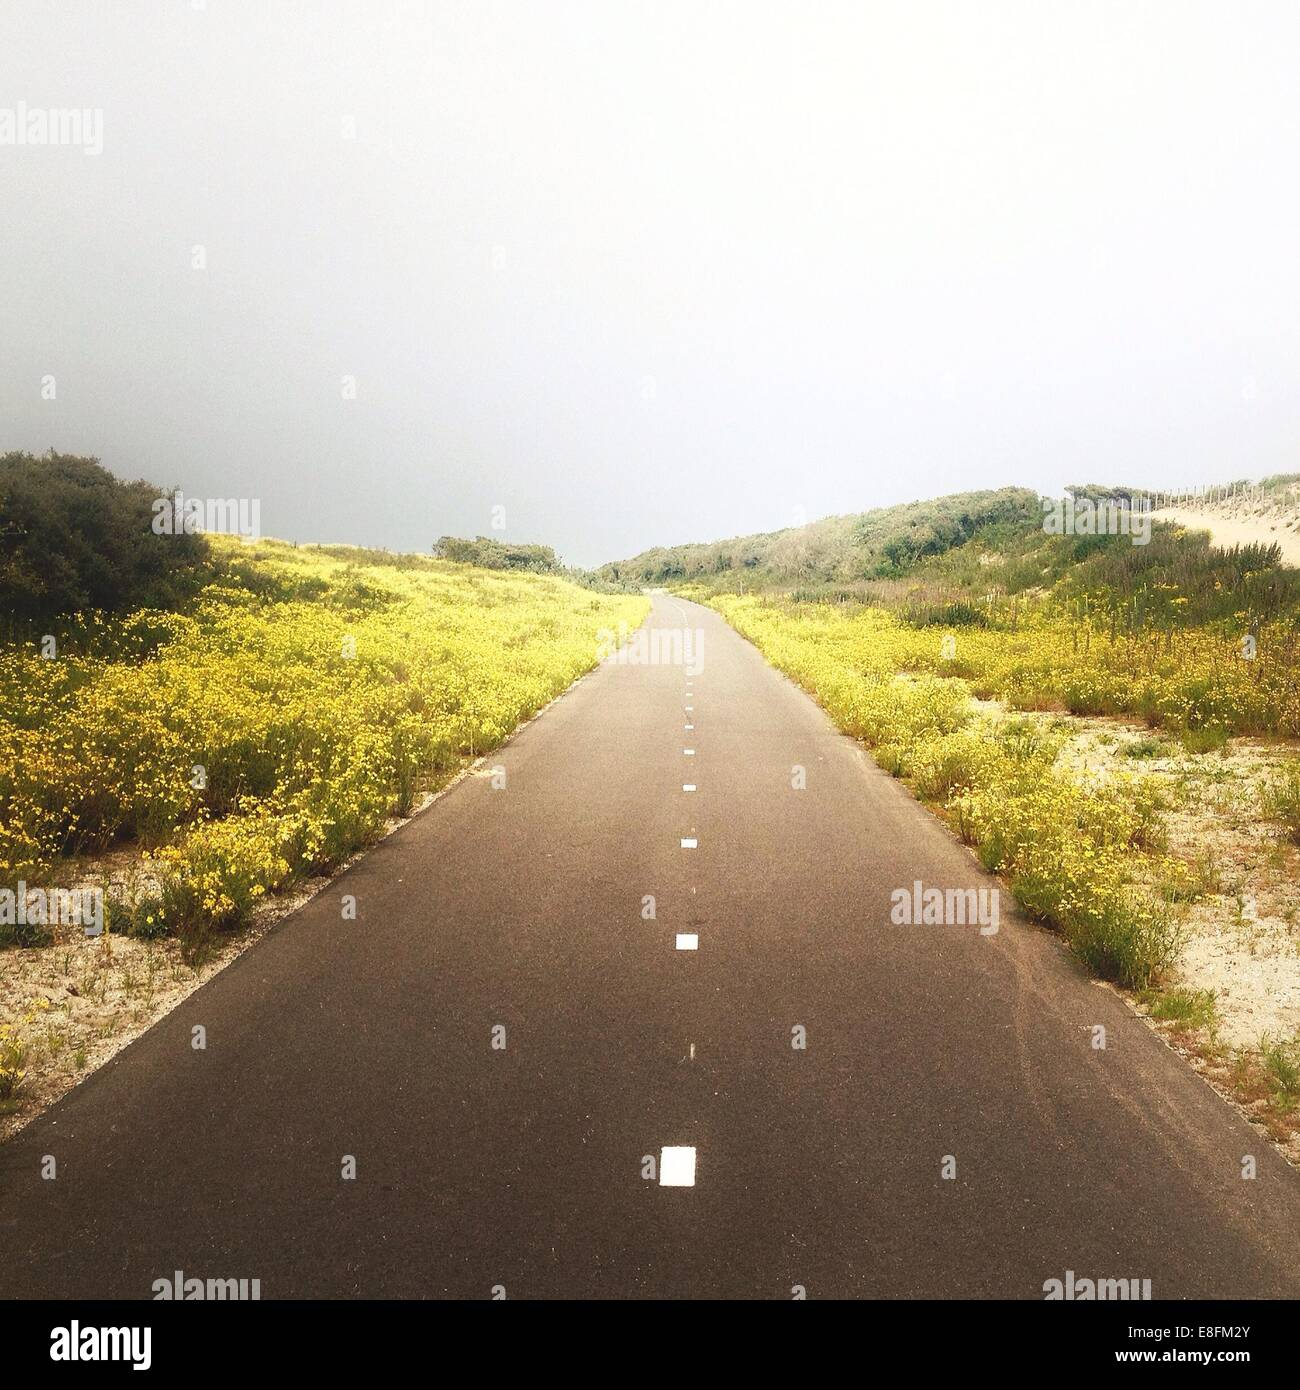 Landscape with road - Stock Image